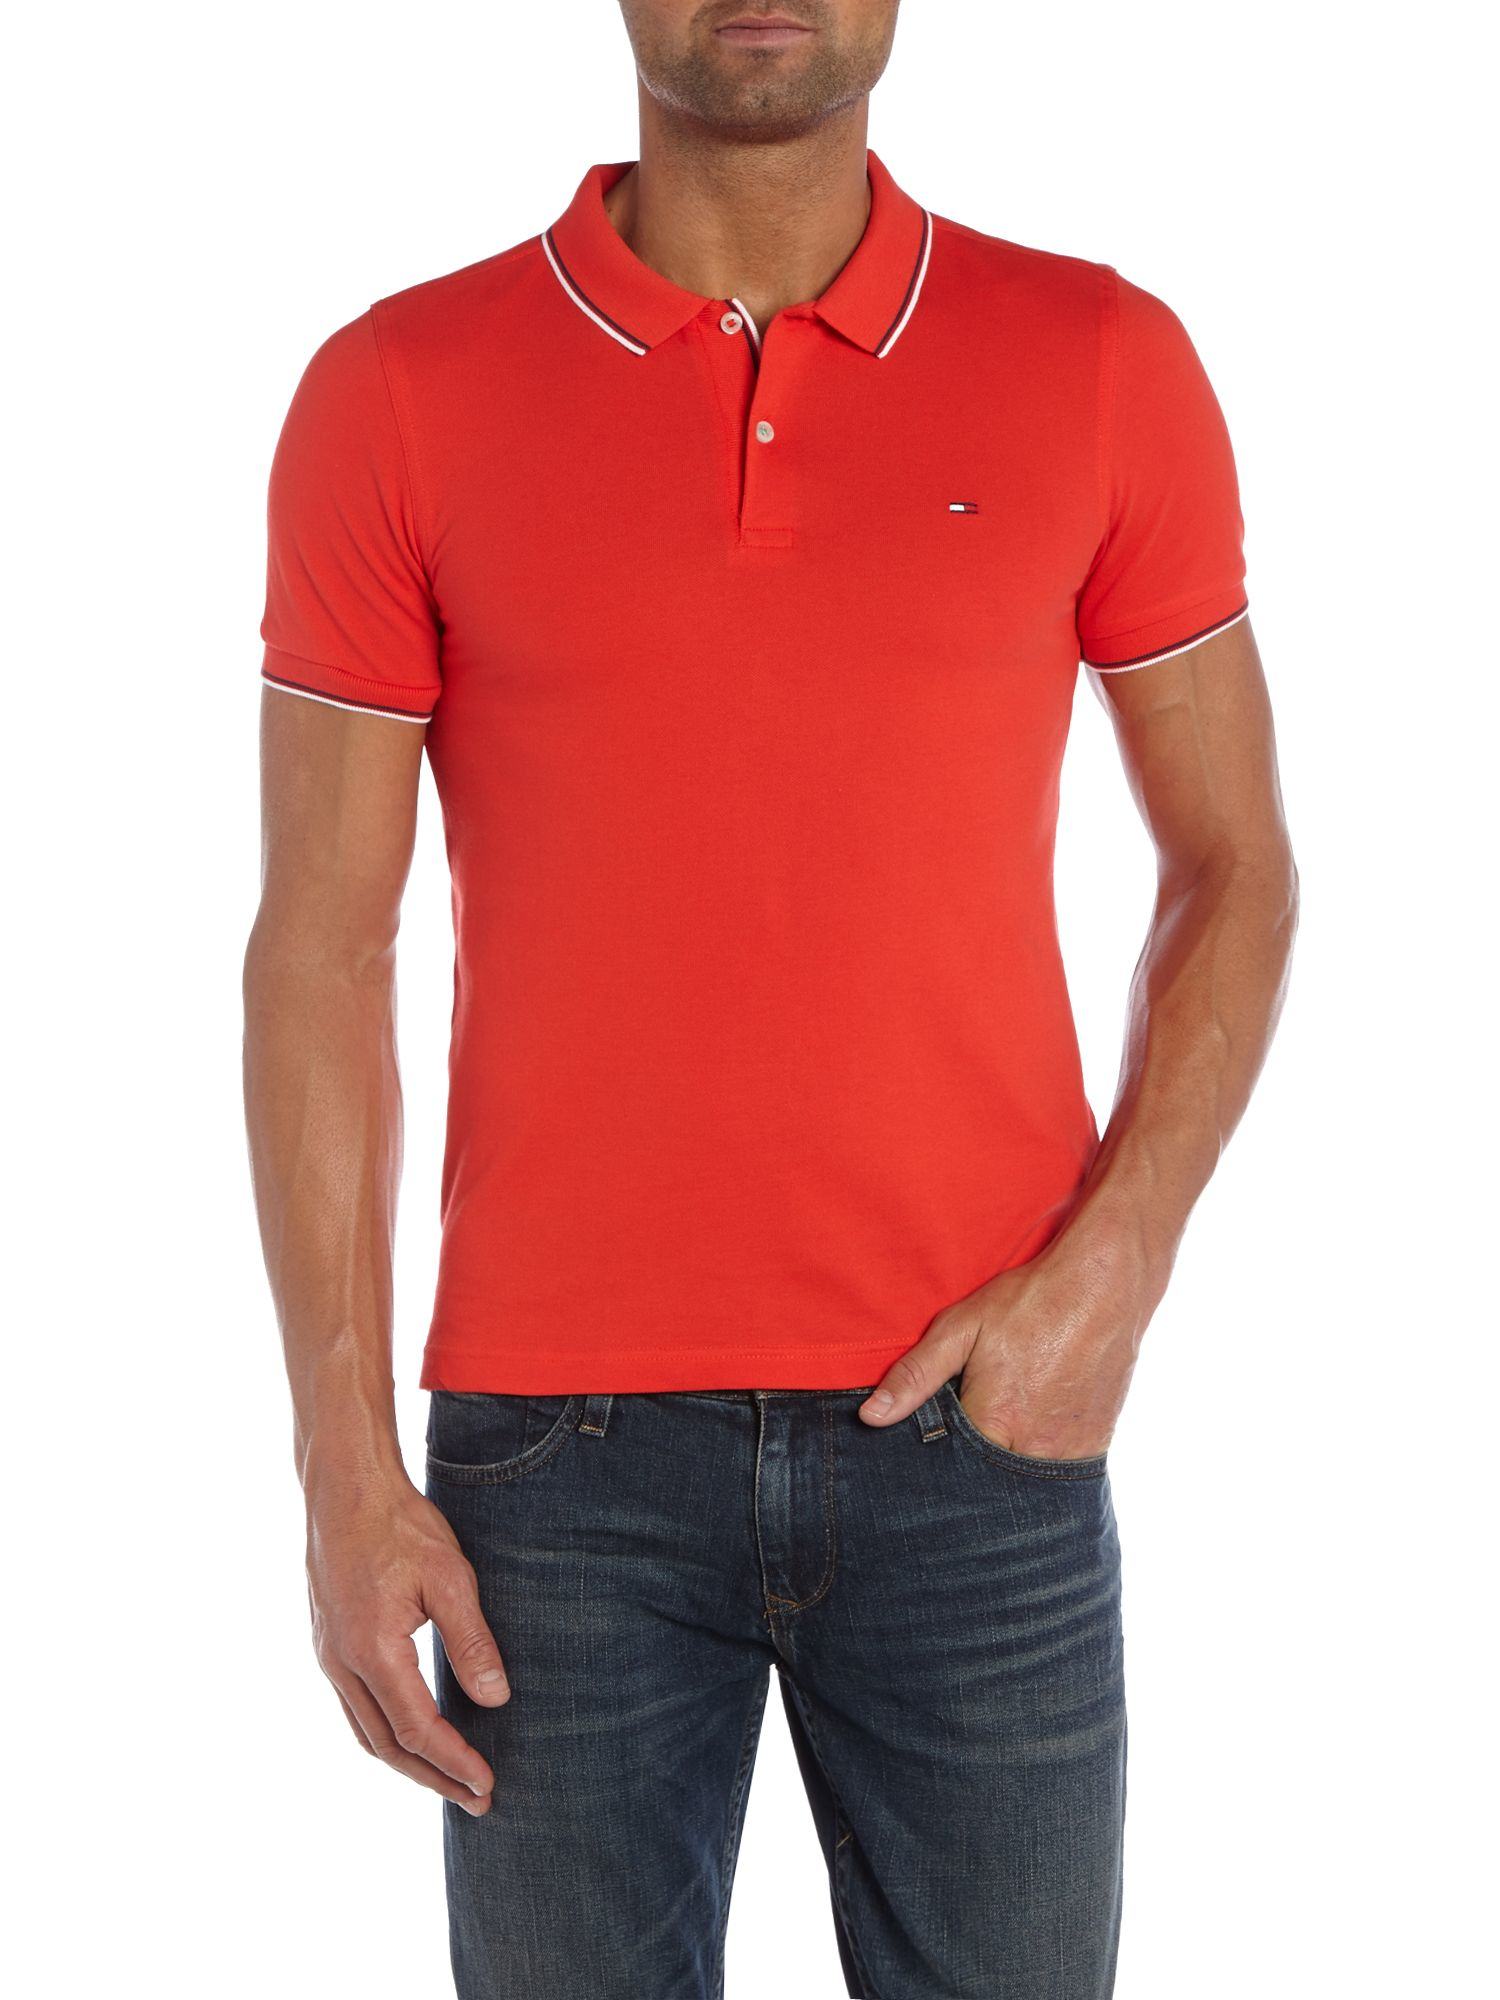 tommy hilfiger paddy plain slim fit polo shirt in red for men lyst. Black Bedroom Furniture Sets. Home Design Ideas